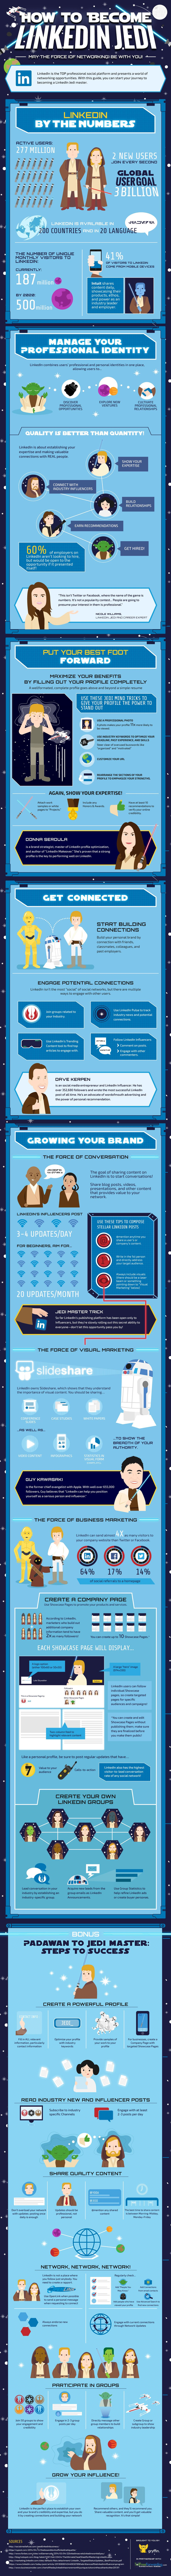 May The Work Force Be With You How To Be A Linkedin Jedi Infographic Social Media Infographic Social Media Infographic Marketing